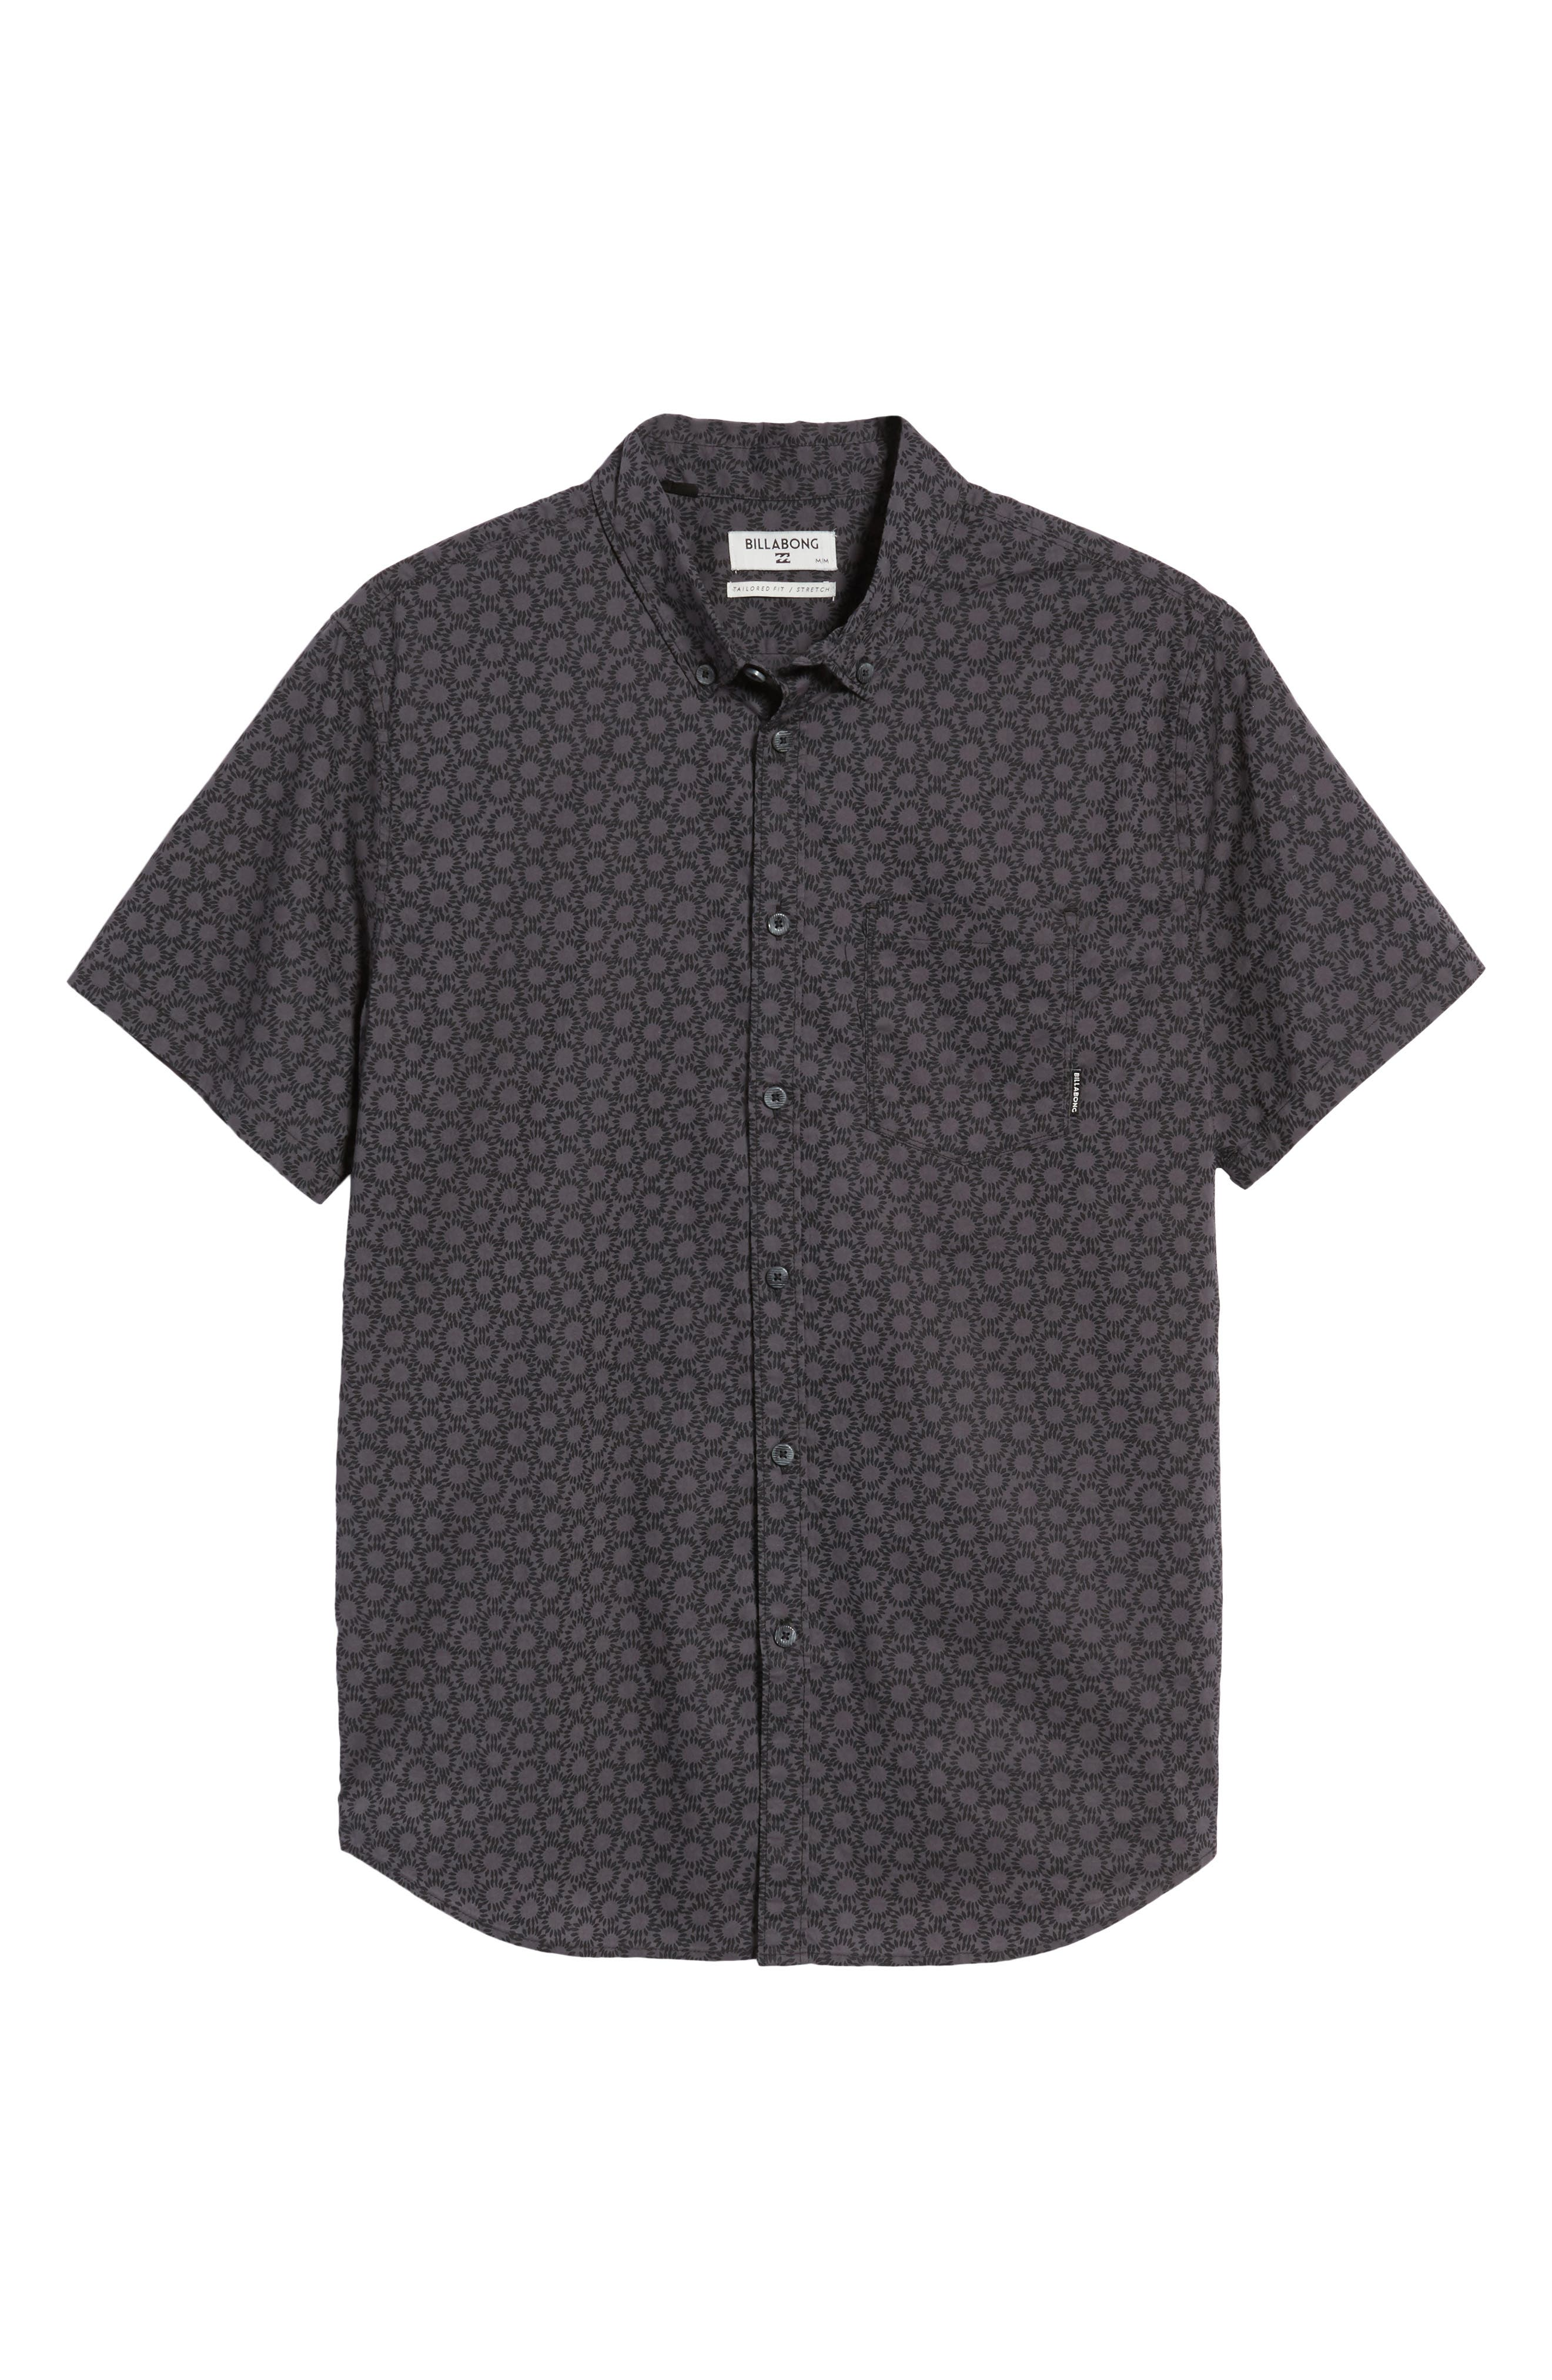 Sundays Sport Shirt,                             Alternate thumbnail 6, color,                             001